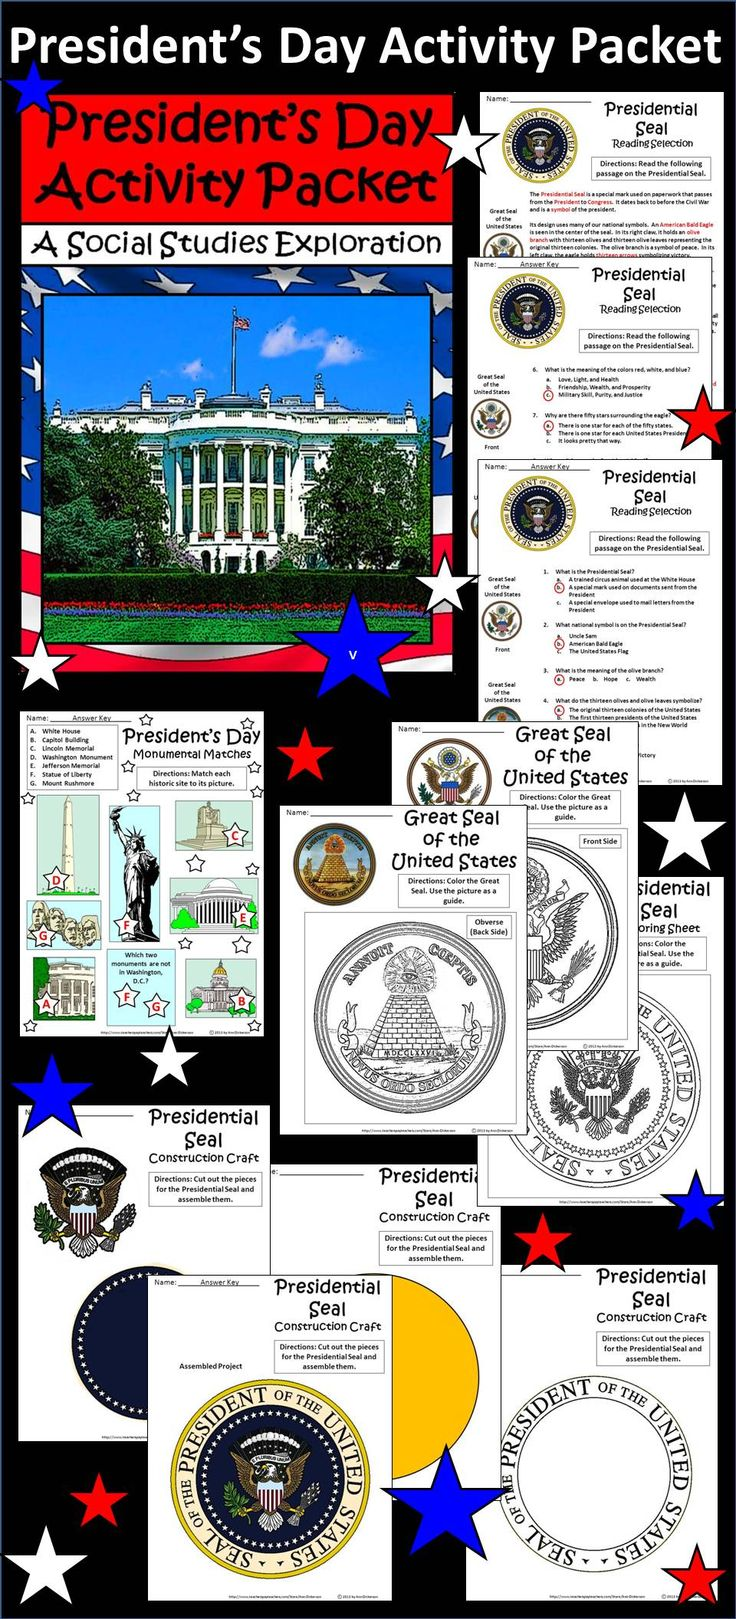 President's Day Activity Packet: This colorful President's Day activity packet details the history and symbolism of the Presidential Seal of the United States. Contents include: * President's Day Monuments Matching Sheet * President's Day Reading Selection on the Presidential Seal * Reading Comprehension Quiz * Coloring Sheet of the Presidential Seal * Two President's Day Coloring Sheets of the Great Seal of the United States * Presidential Seal Construction Craft * Answer Keys